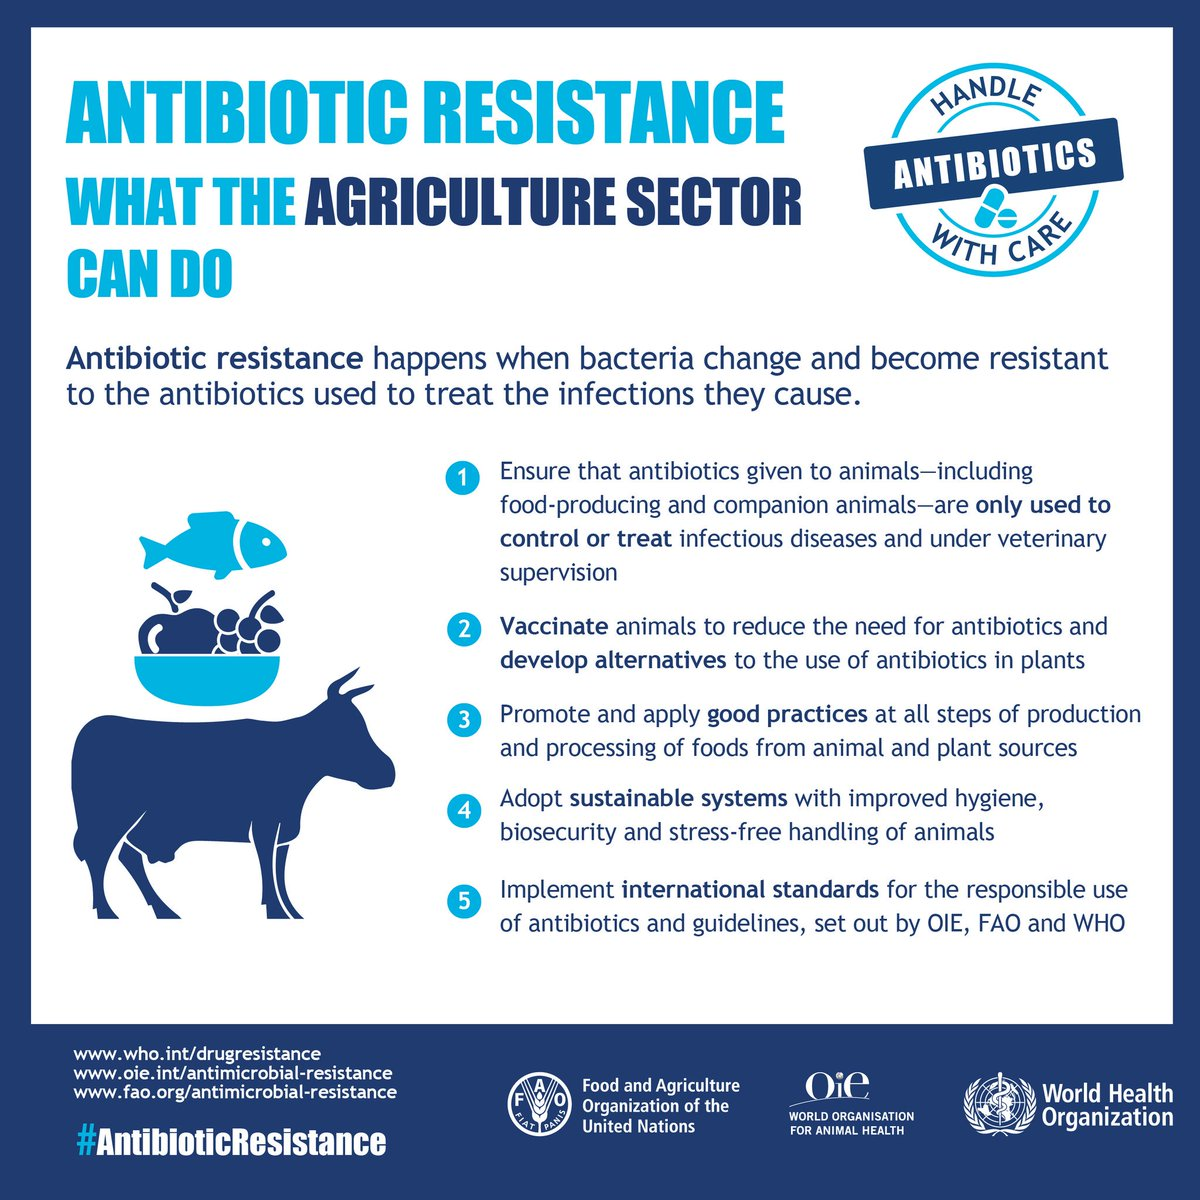 What the food and agriculture sector can do to help combat #AntibioticResistance. Support #AntibioticResistanceWeek - #hcsm #hcsmSA #SDGs<br>http://pic.twitter.com/n1uCMYyJ0t